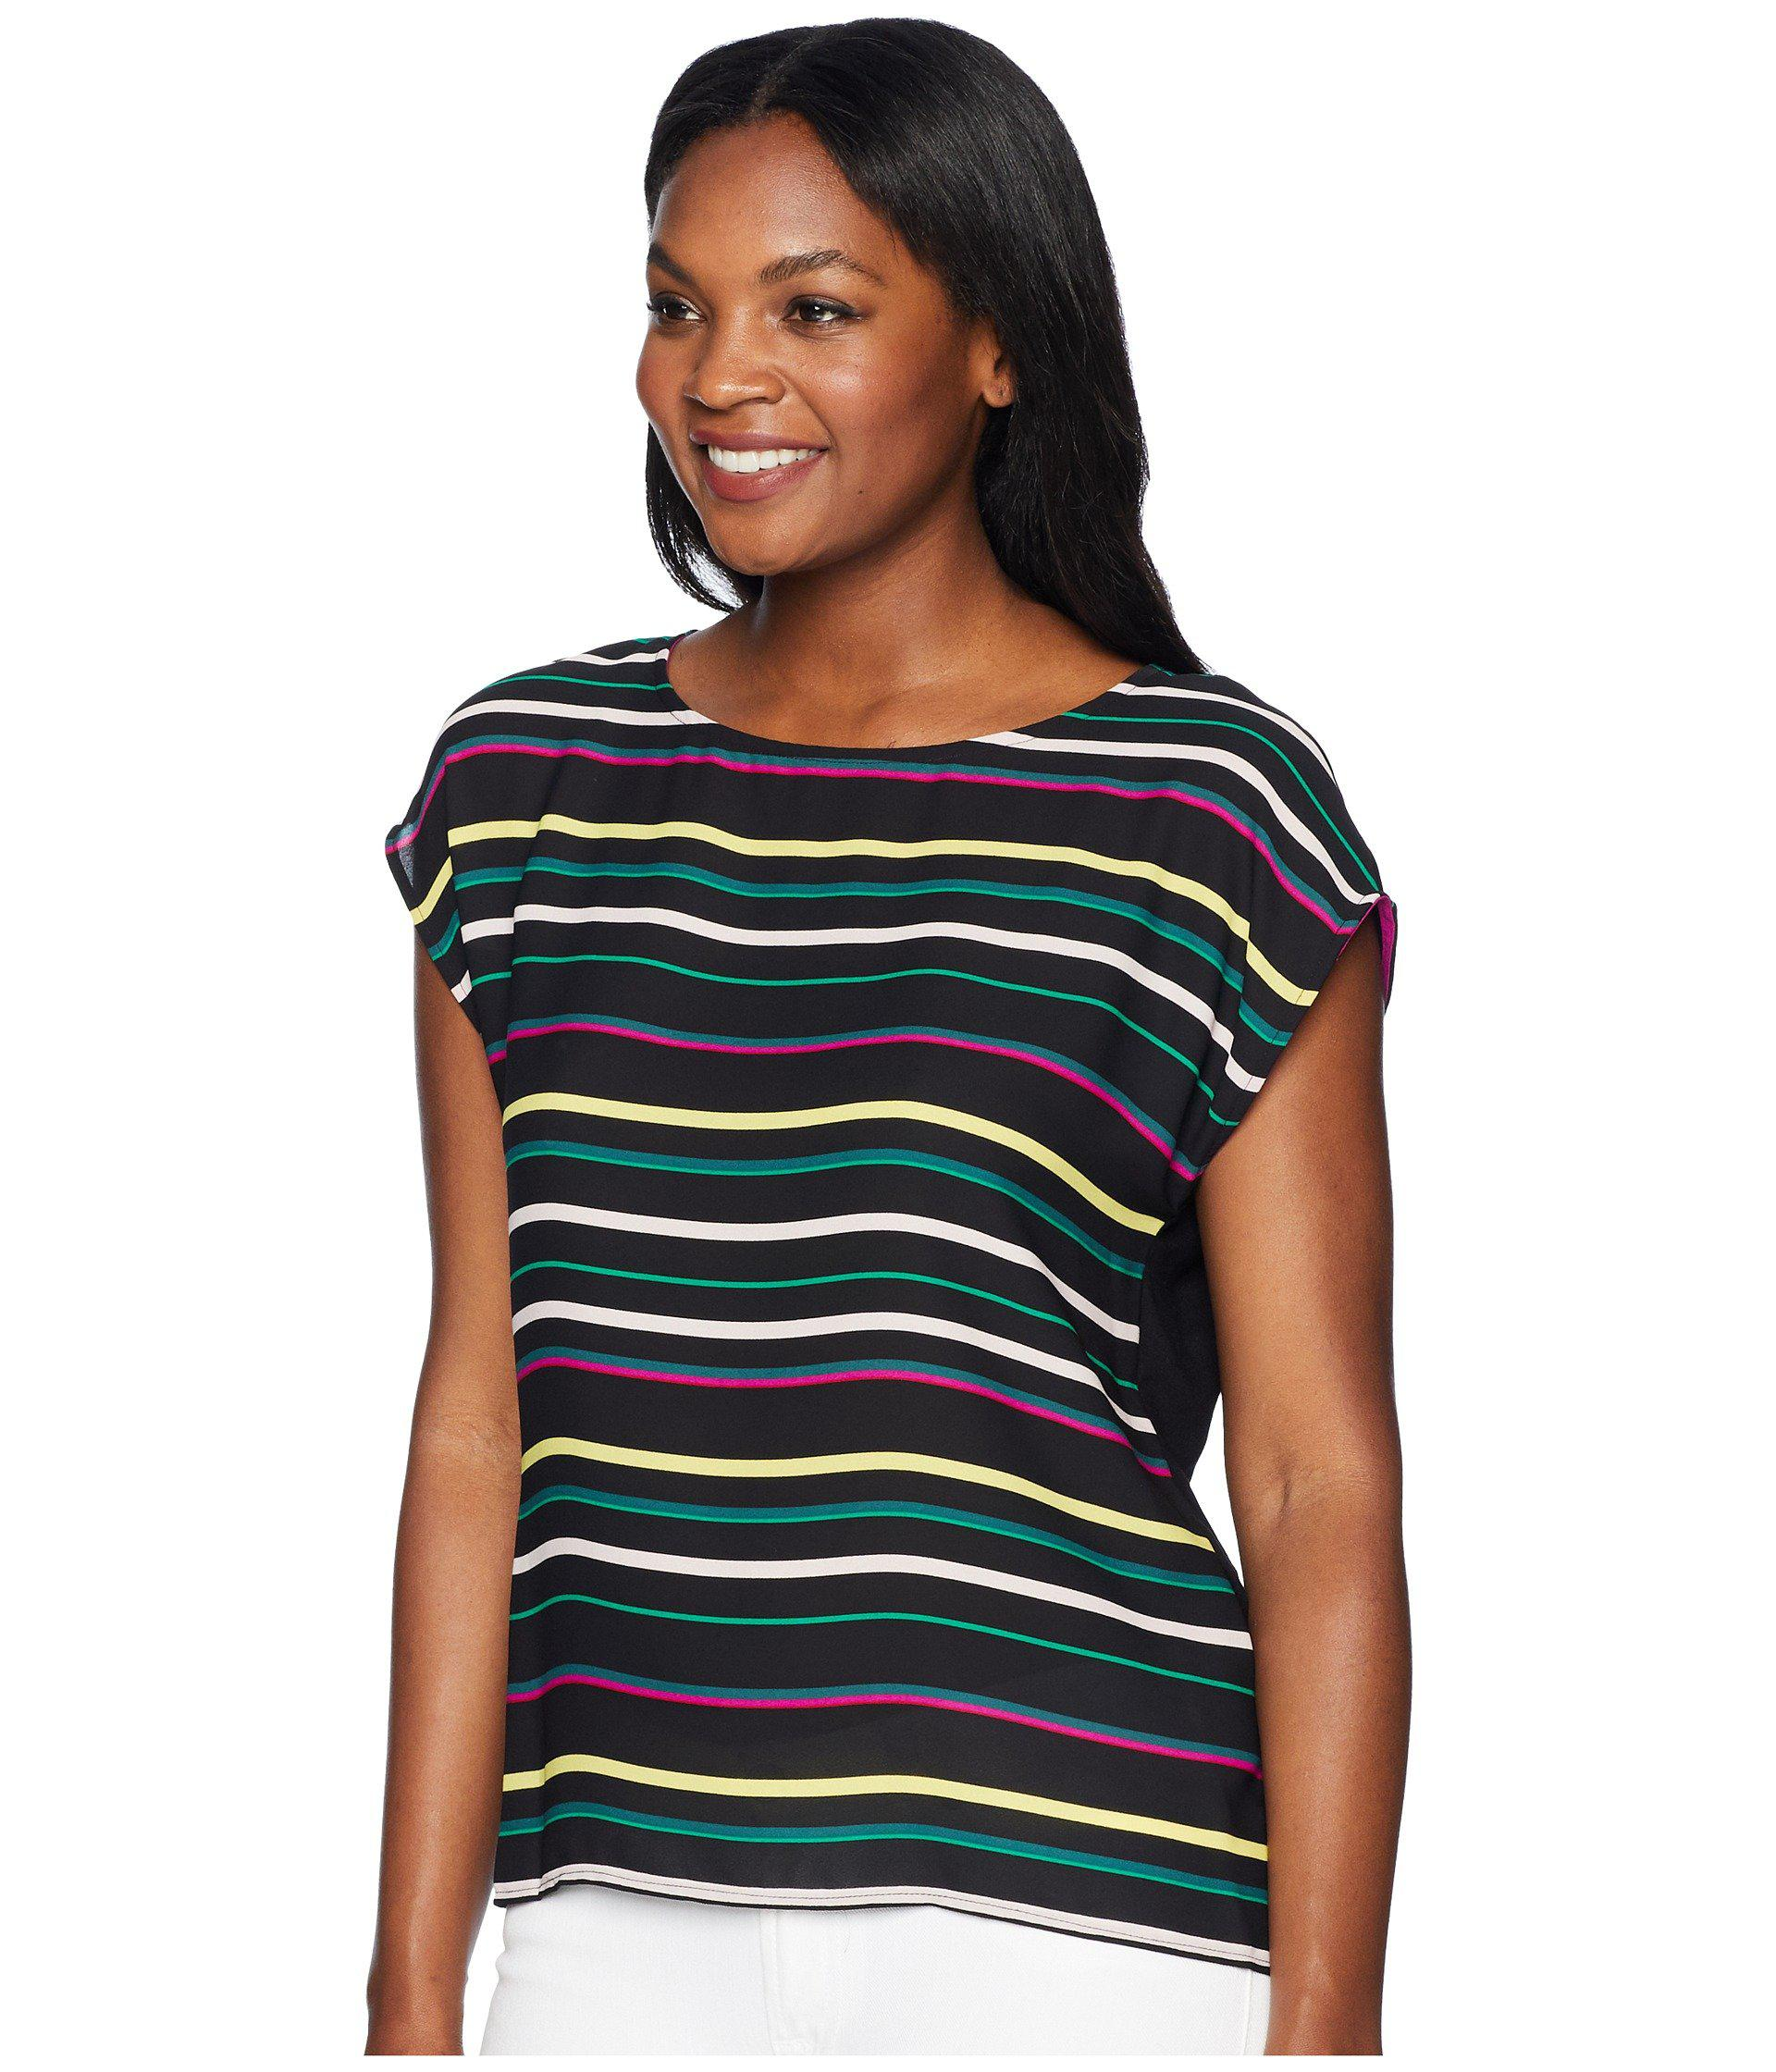 e84a12c97be00 Lyst - Vince Camuto Extended Shoulder Paradise Multi Stripe Blouse in Black  - Save 36%